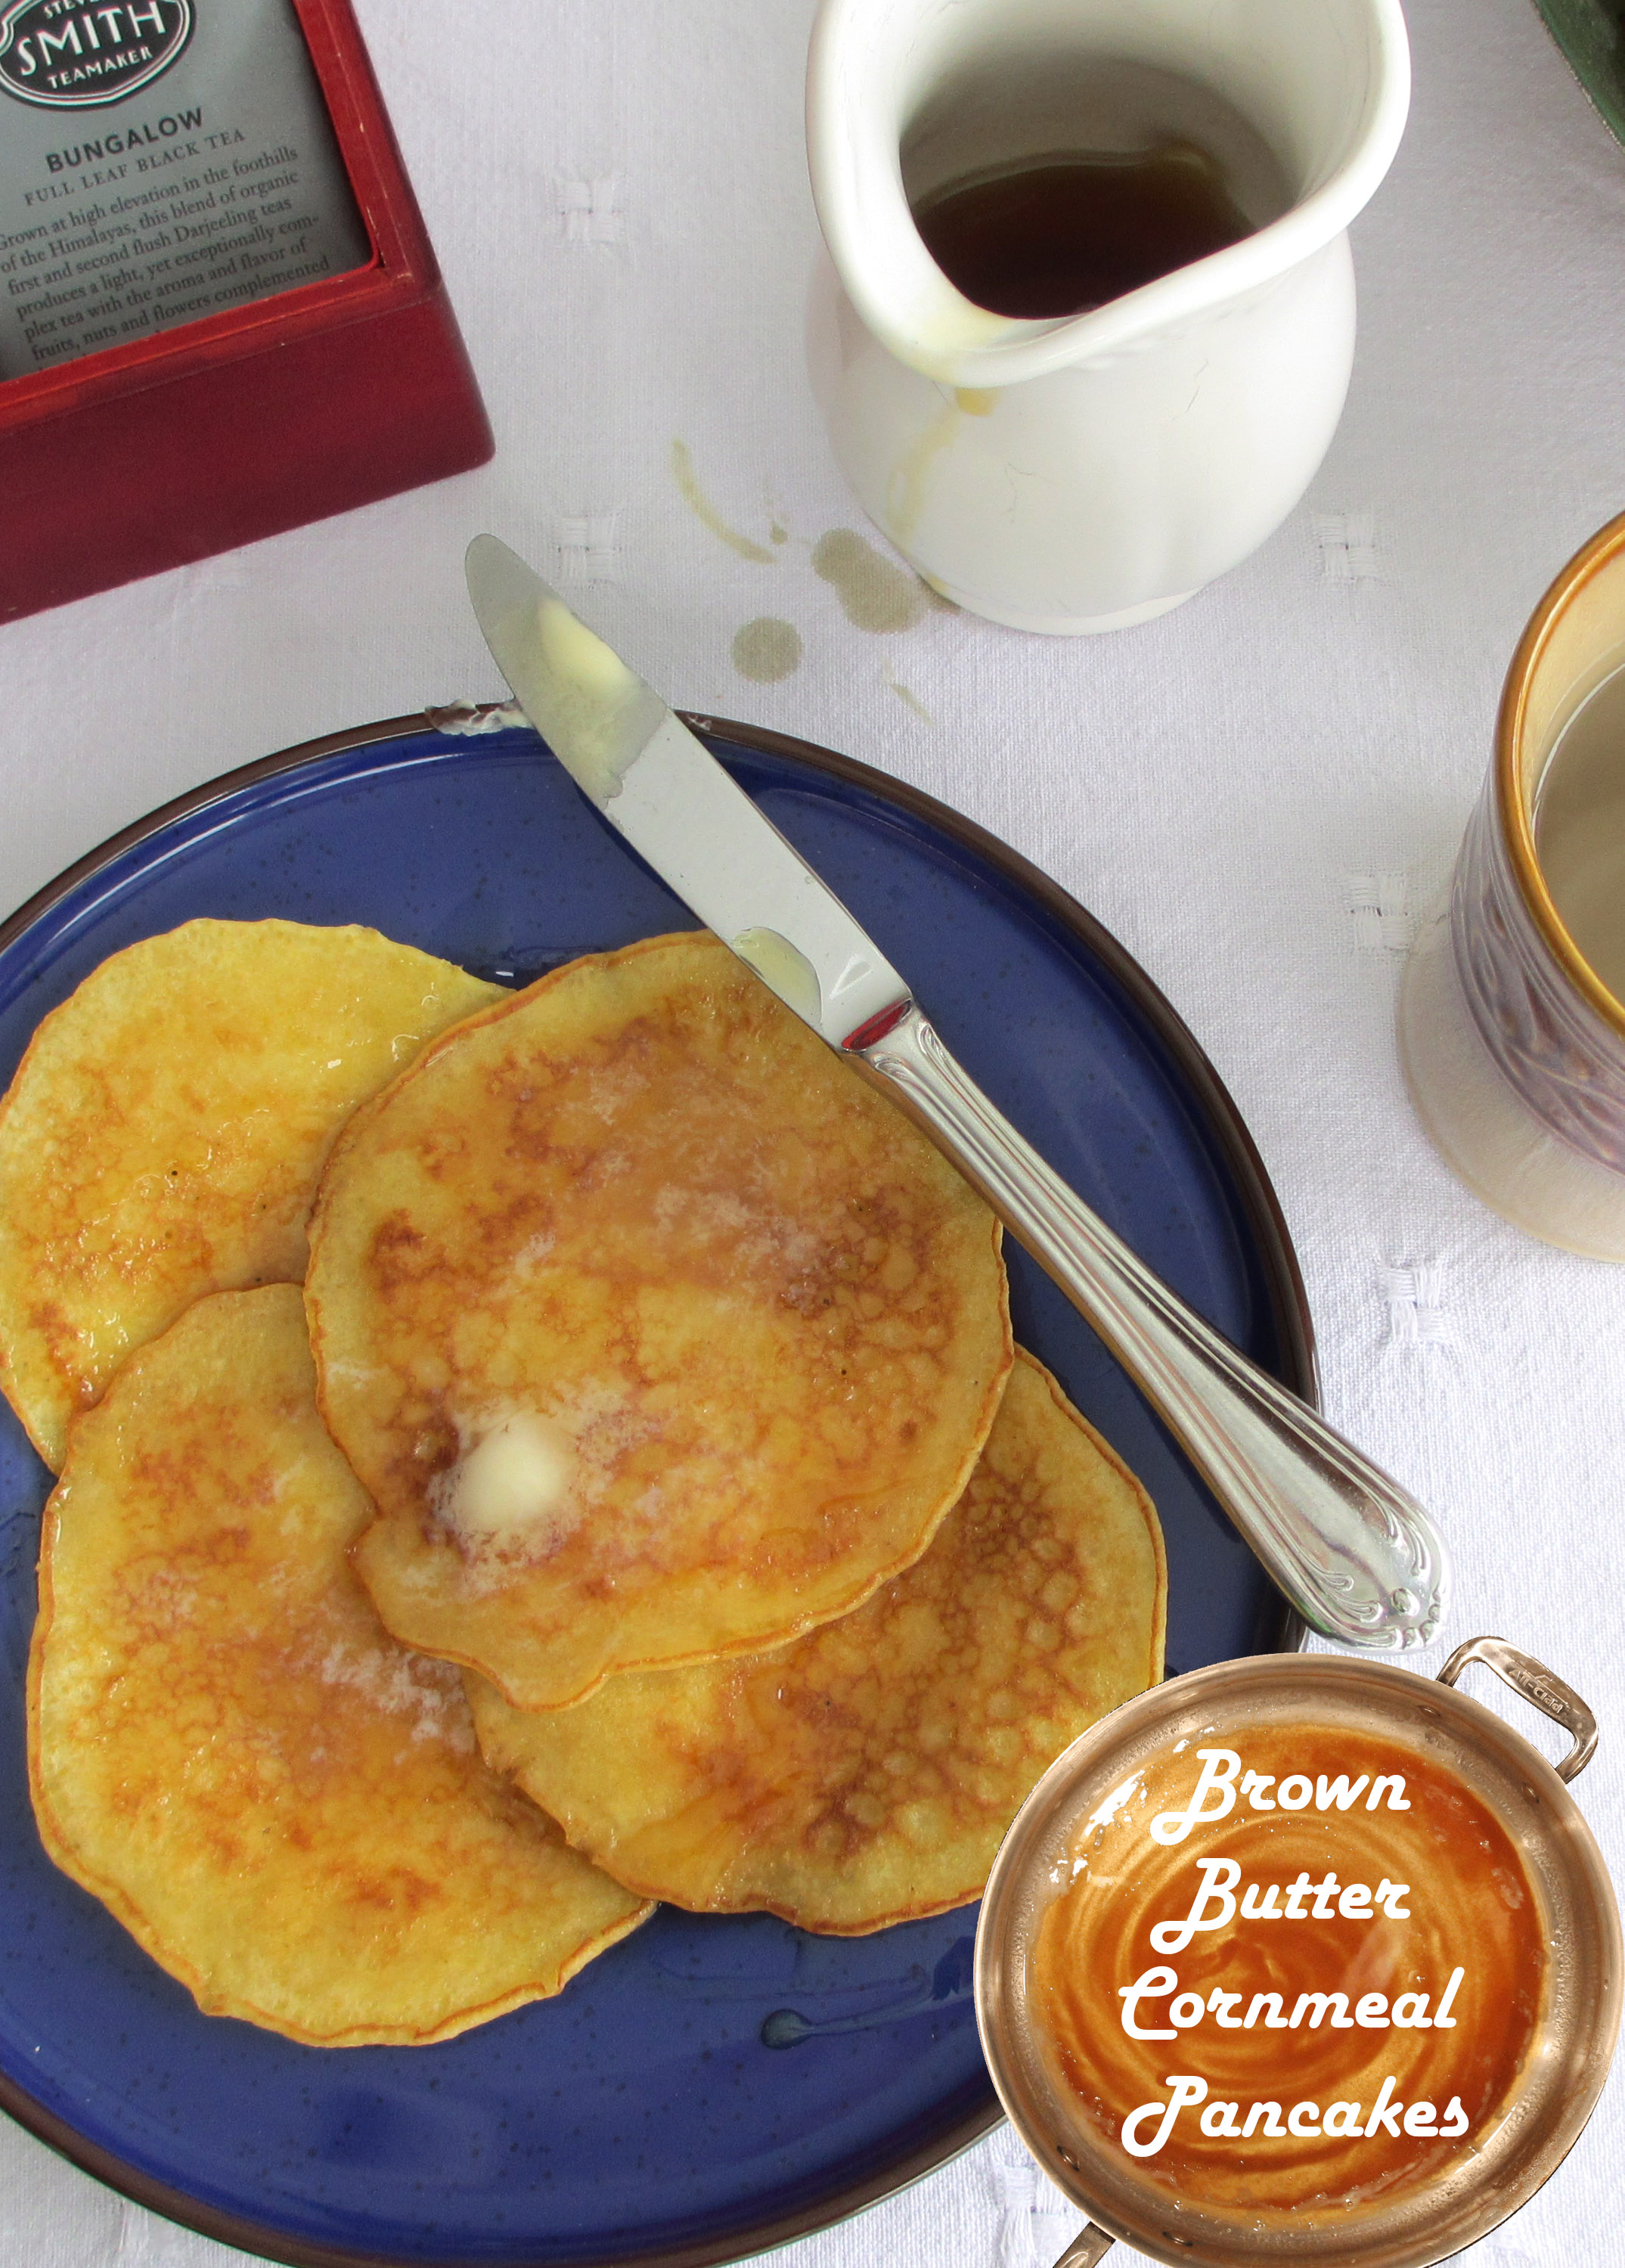 Brown Butter Cornmeal Pancakes